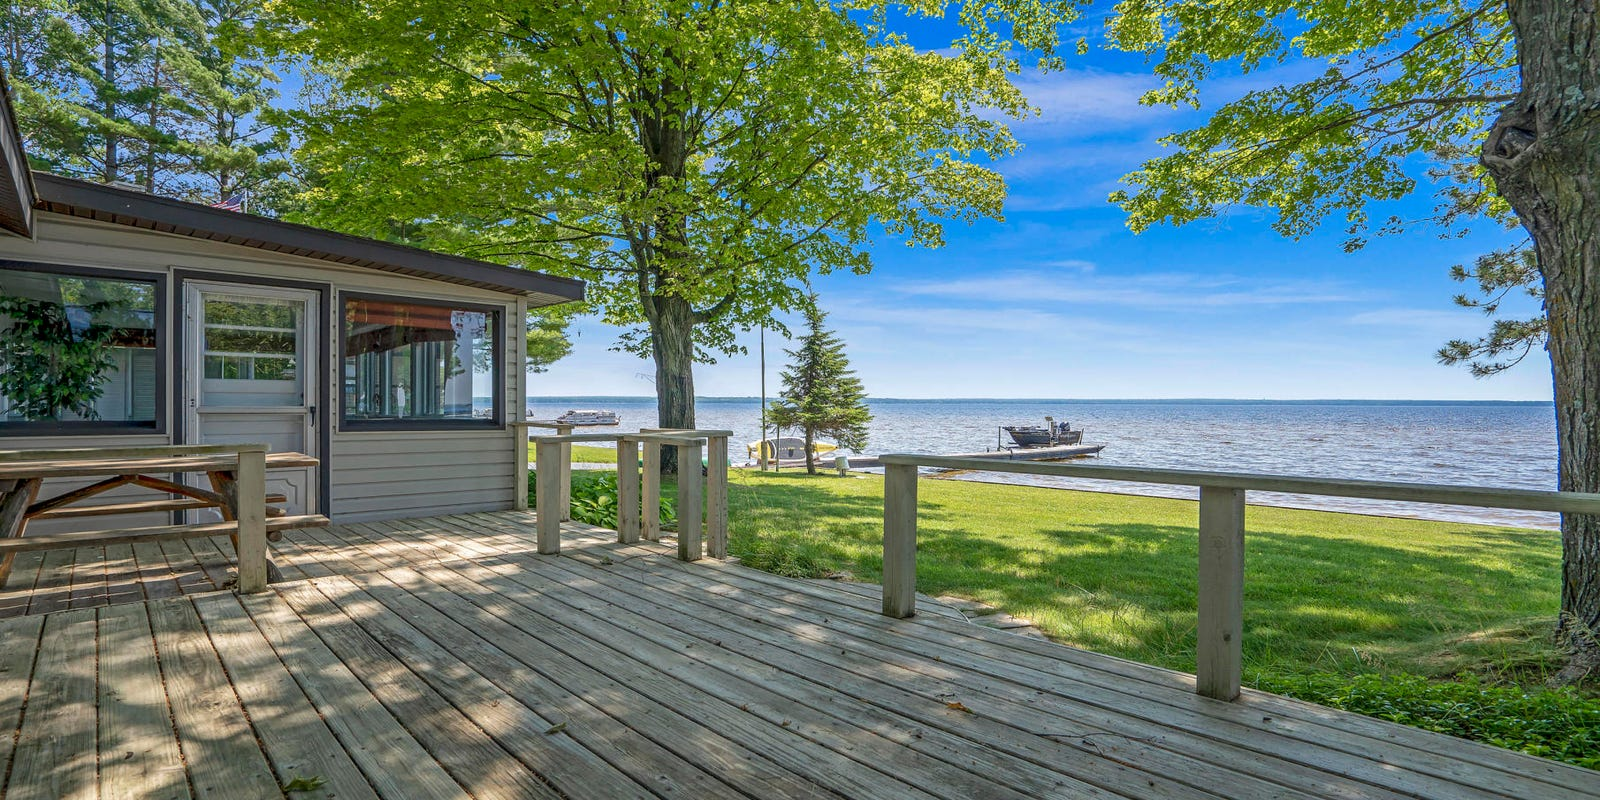 Michigan's Up North cottage market is red hot amid pandemic, recession